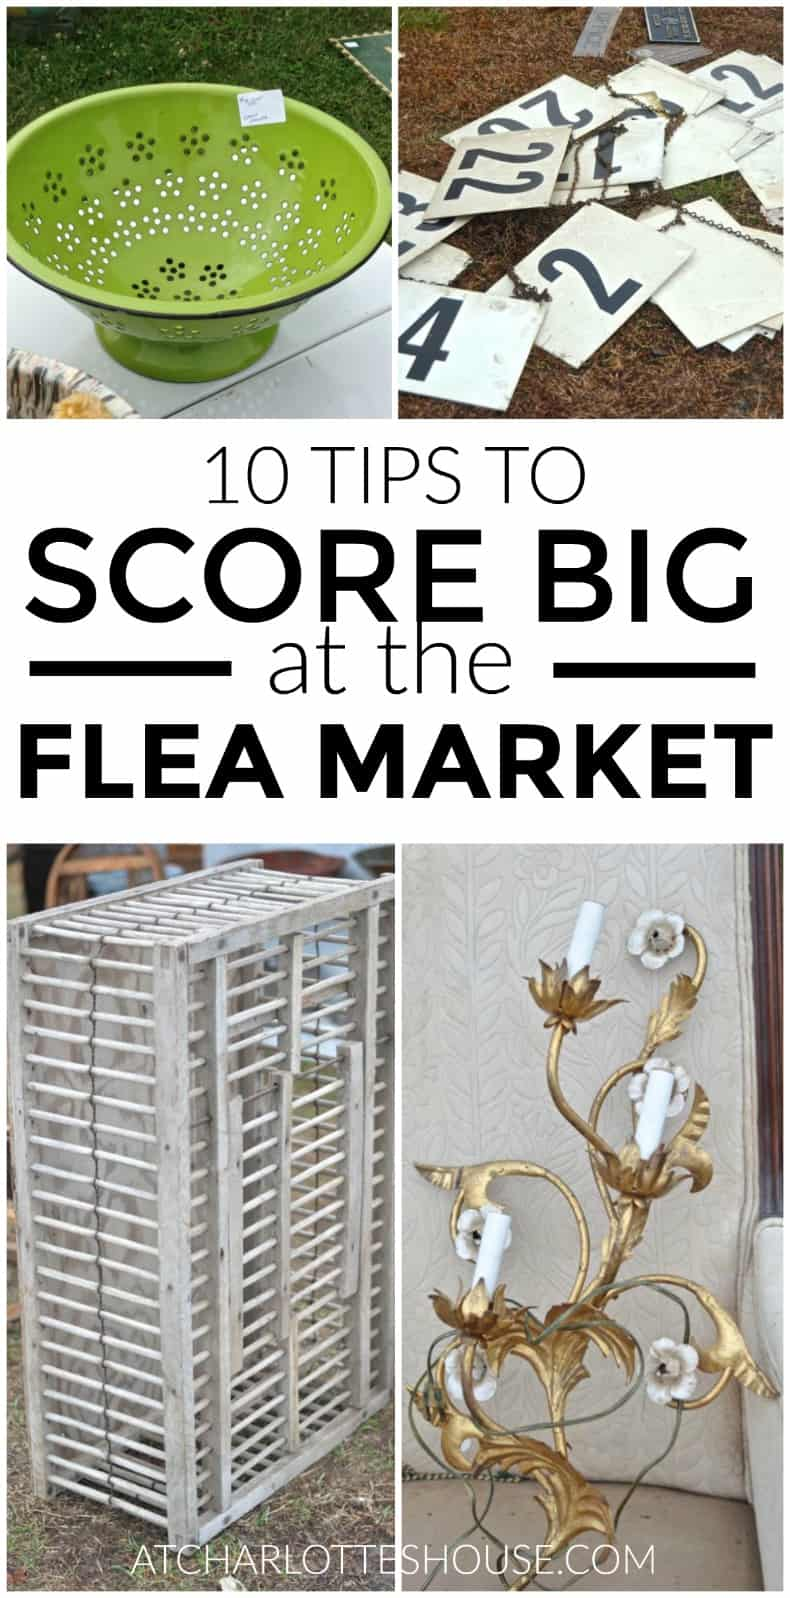 you won't want to miss these tips for scoring huge at the flea market